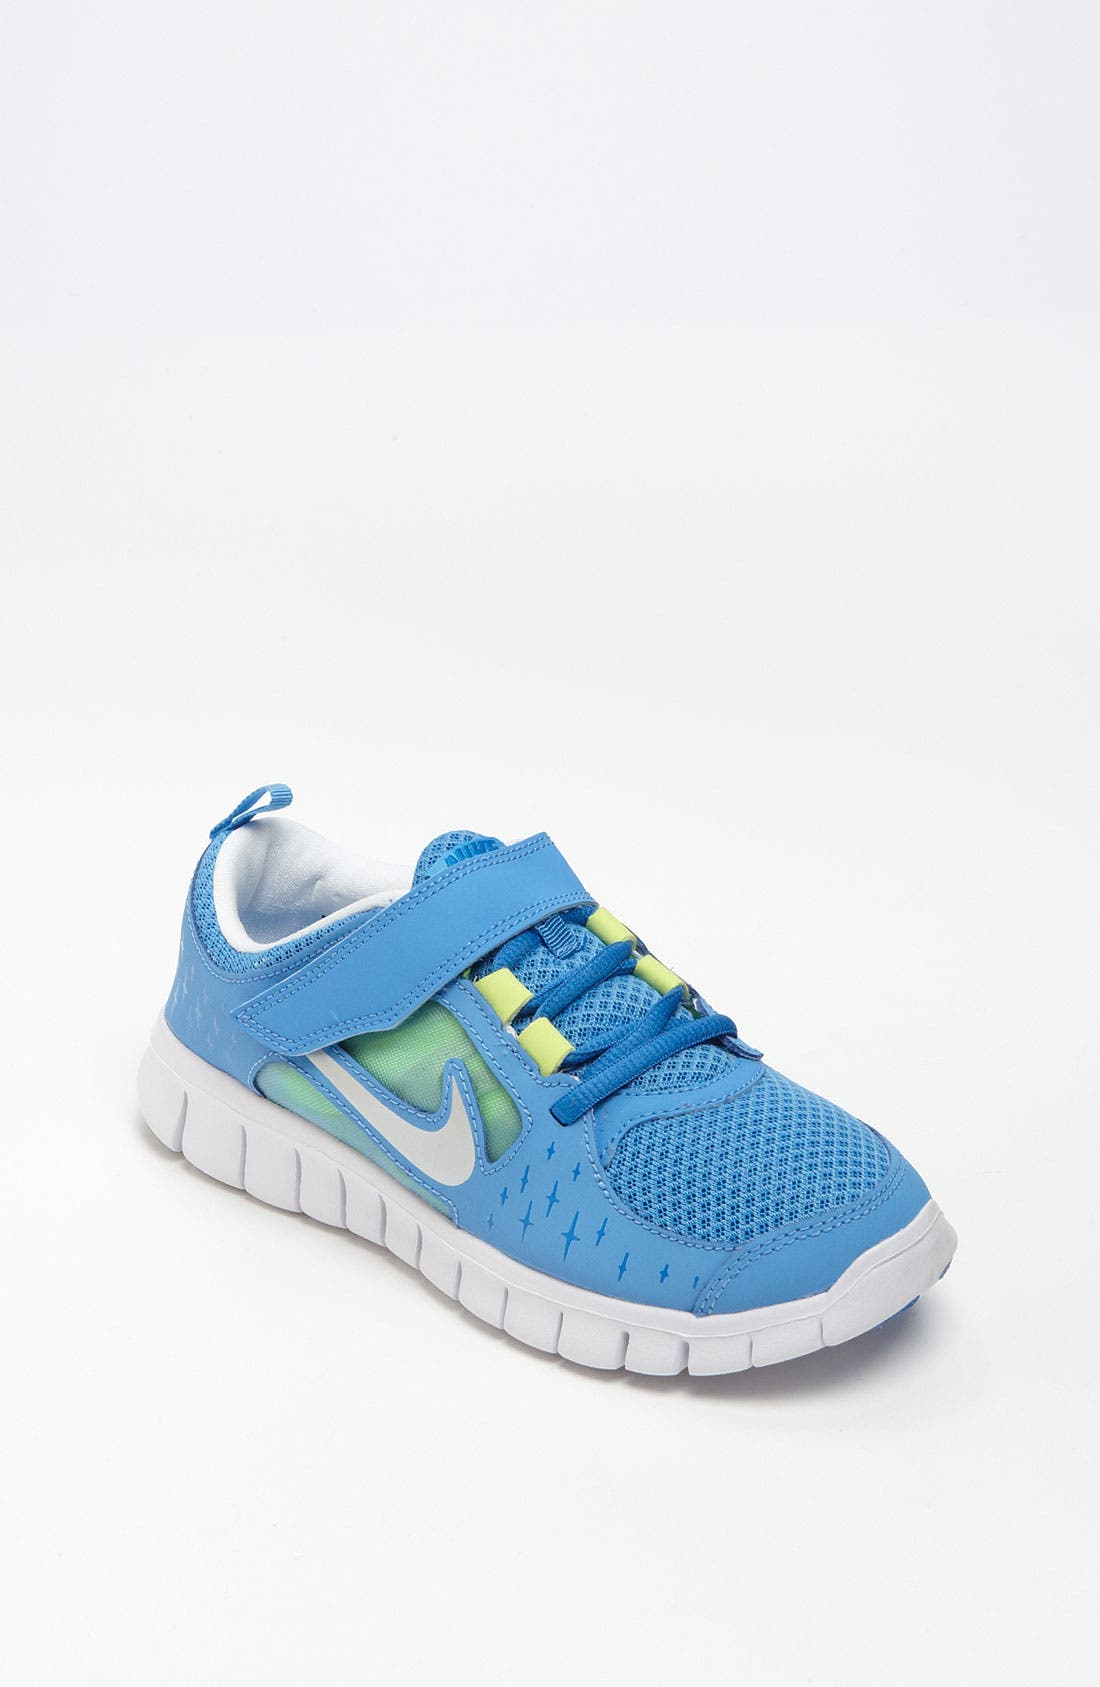 Alternate Image 1 Selected - Nike 'Free Run 3' Sneaker (Baby, Walker, Toddler & Little Kid)